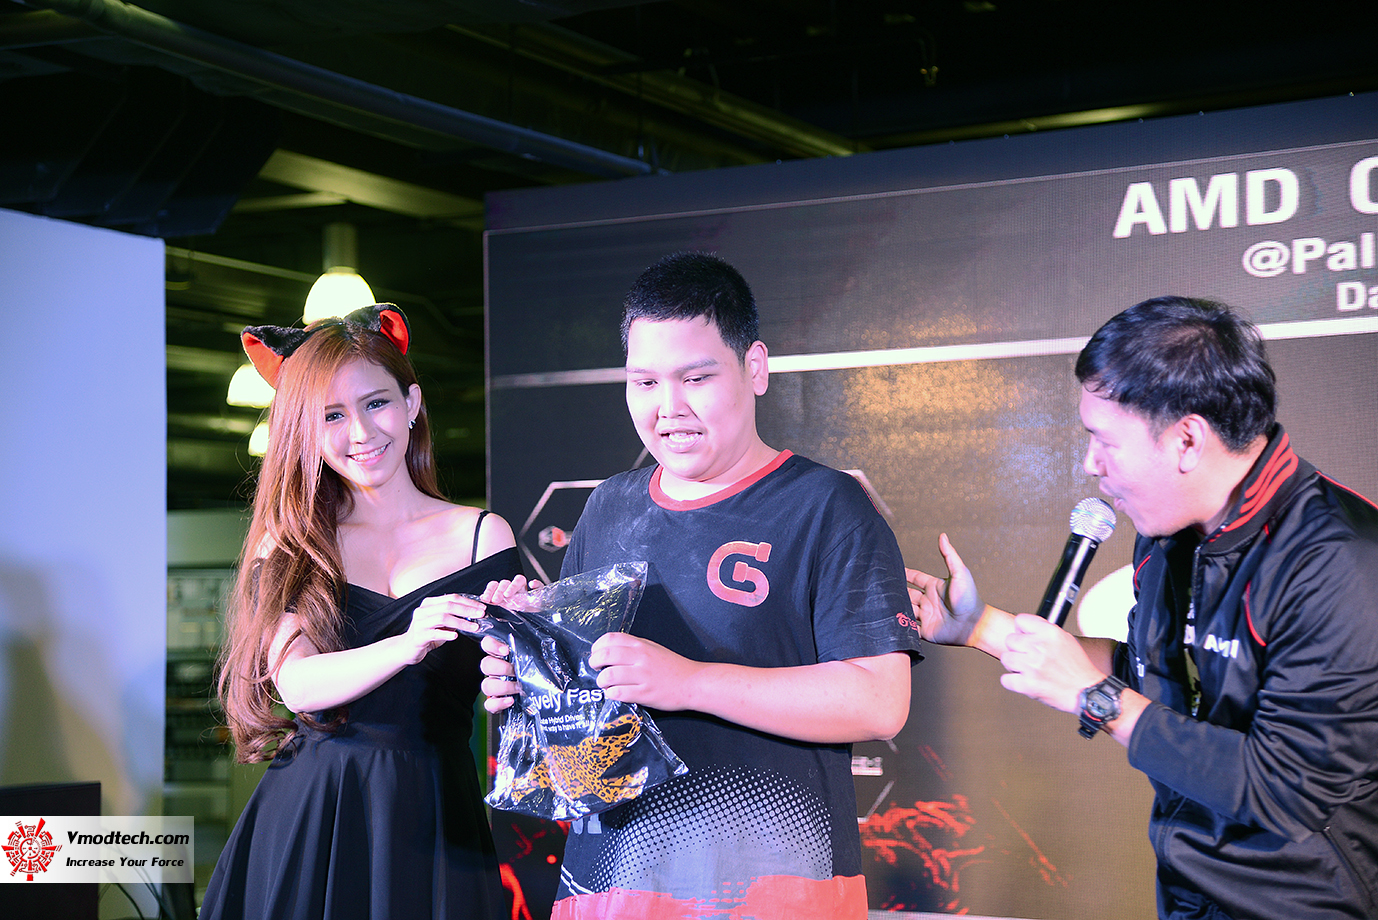 dsc 6956 AMD OMG! Party 2015 (AMD Overclock Modding Gaming Party 2015)